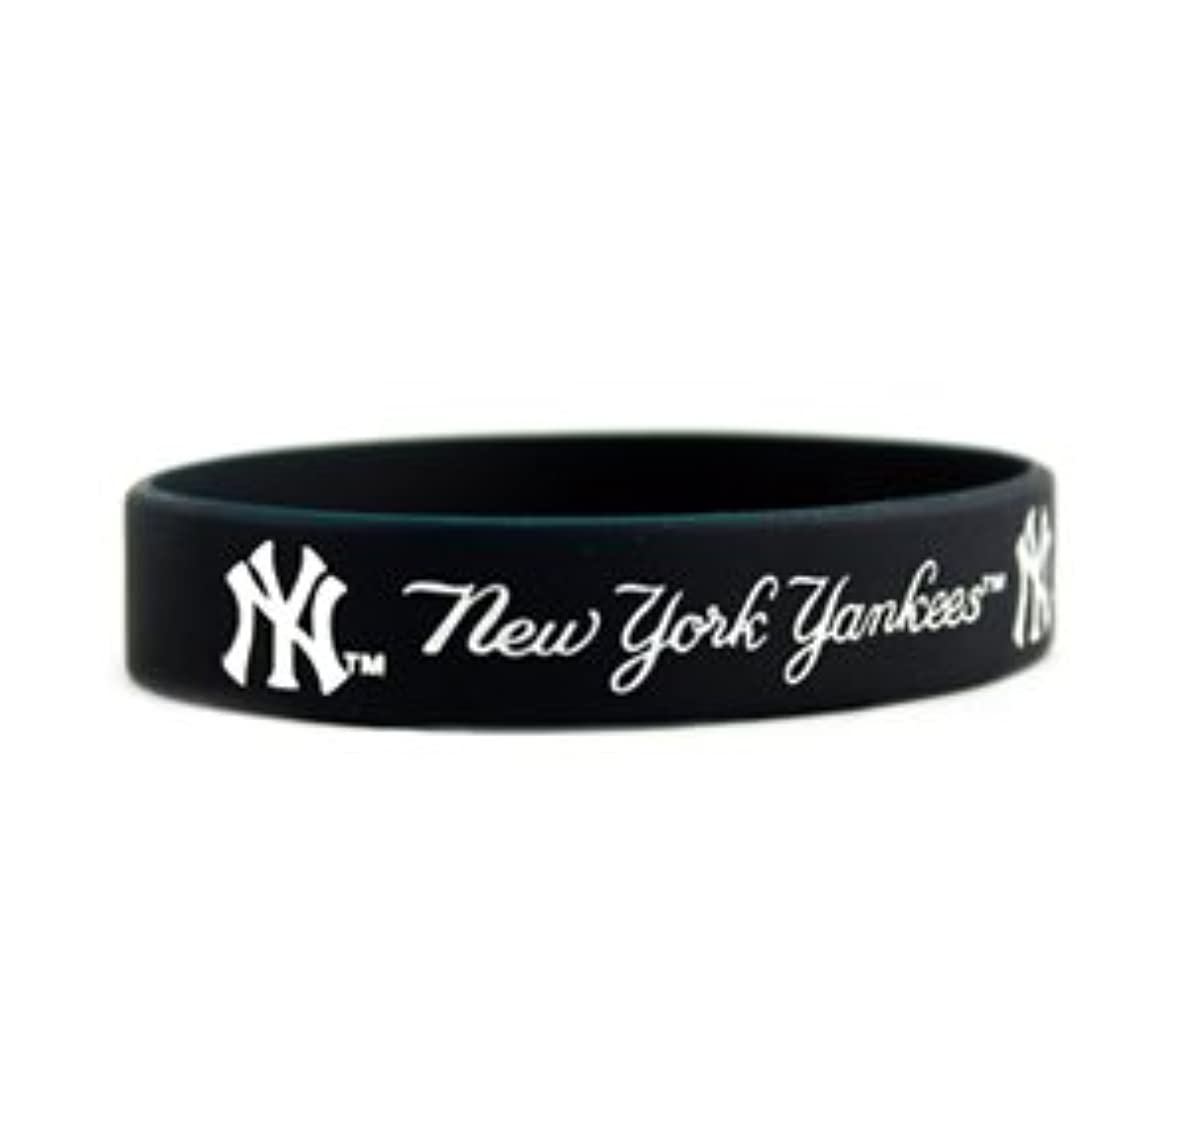 ルアーはねかける宿泊New York Yankees (ニューヨーク ヤンキース) Fragranced Bracelet x 3 個 by New York Yankees for Men